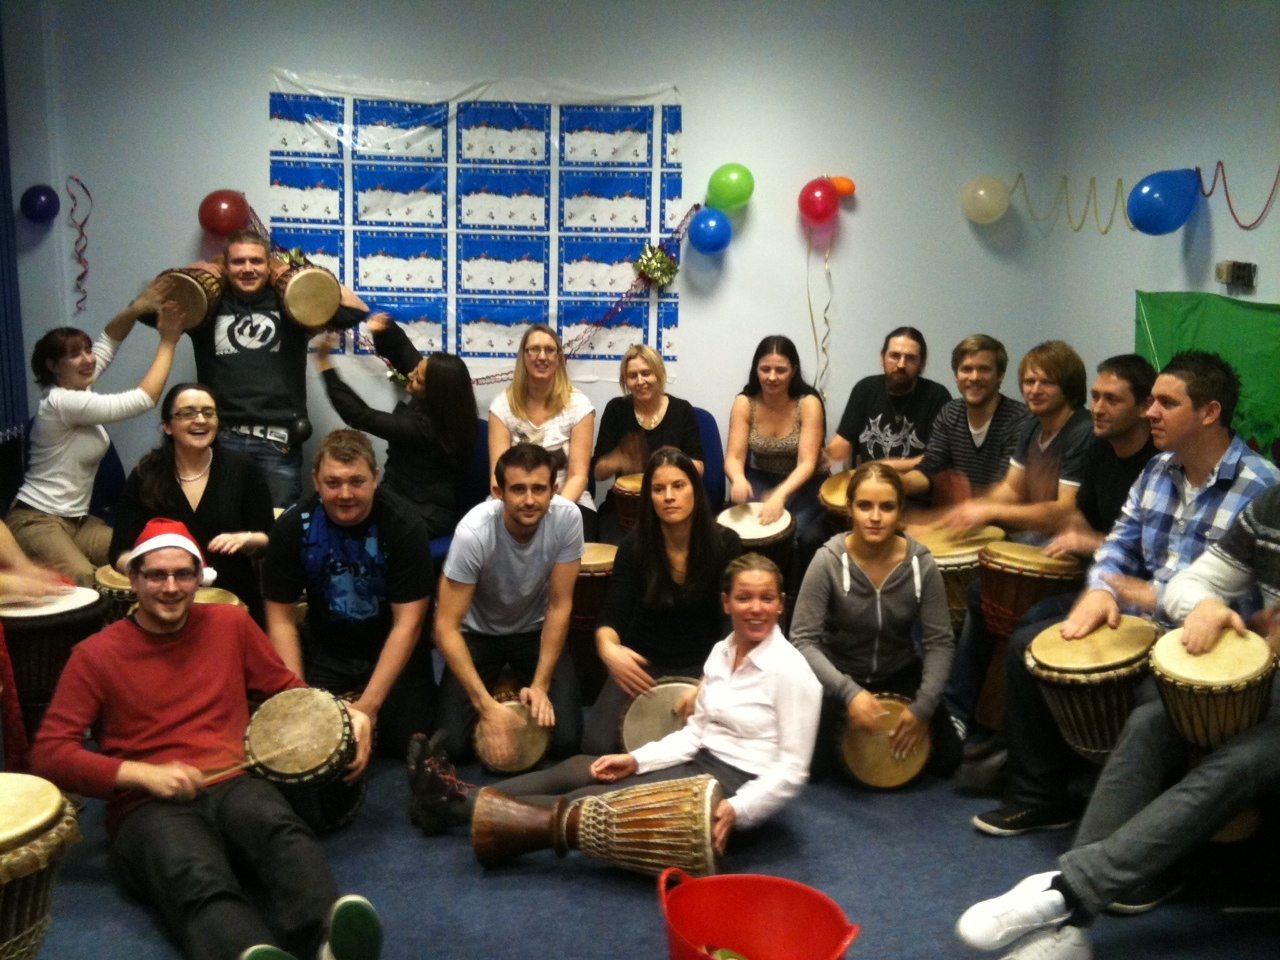 Drumming Team Building in Sheffield and South Yorkshire